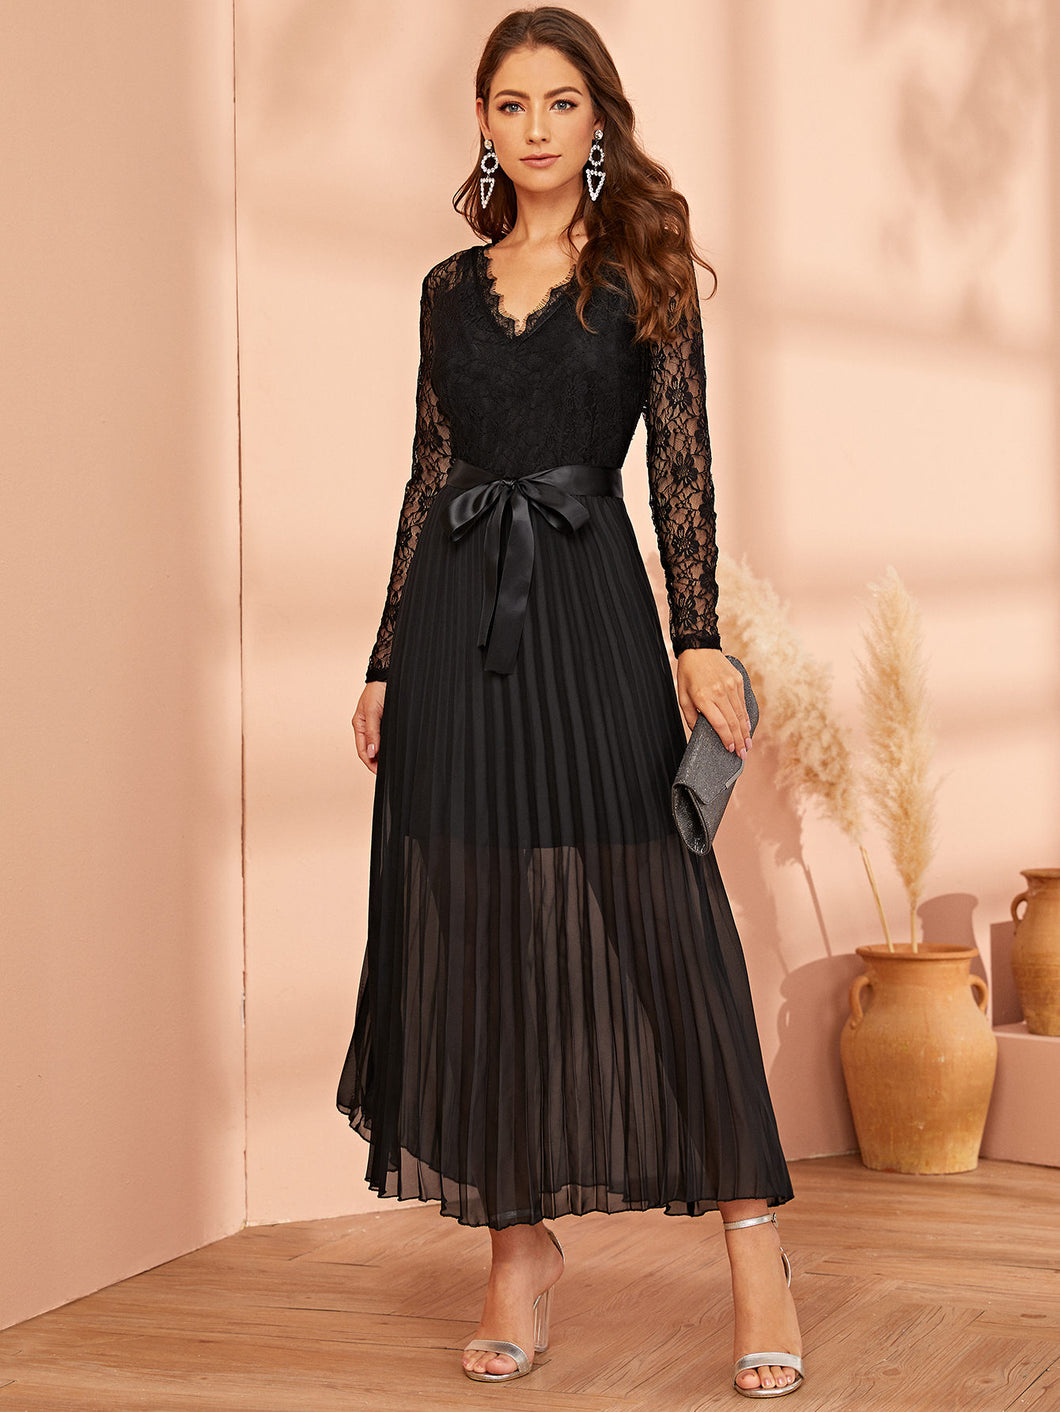 DRESS Lace Panel Plisse Hem Belted Dress - EK CHIC